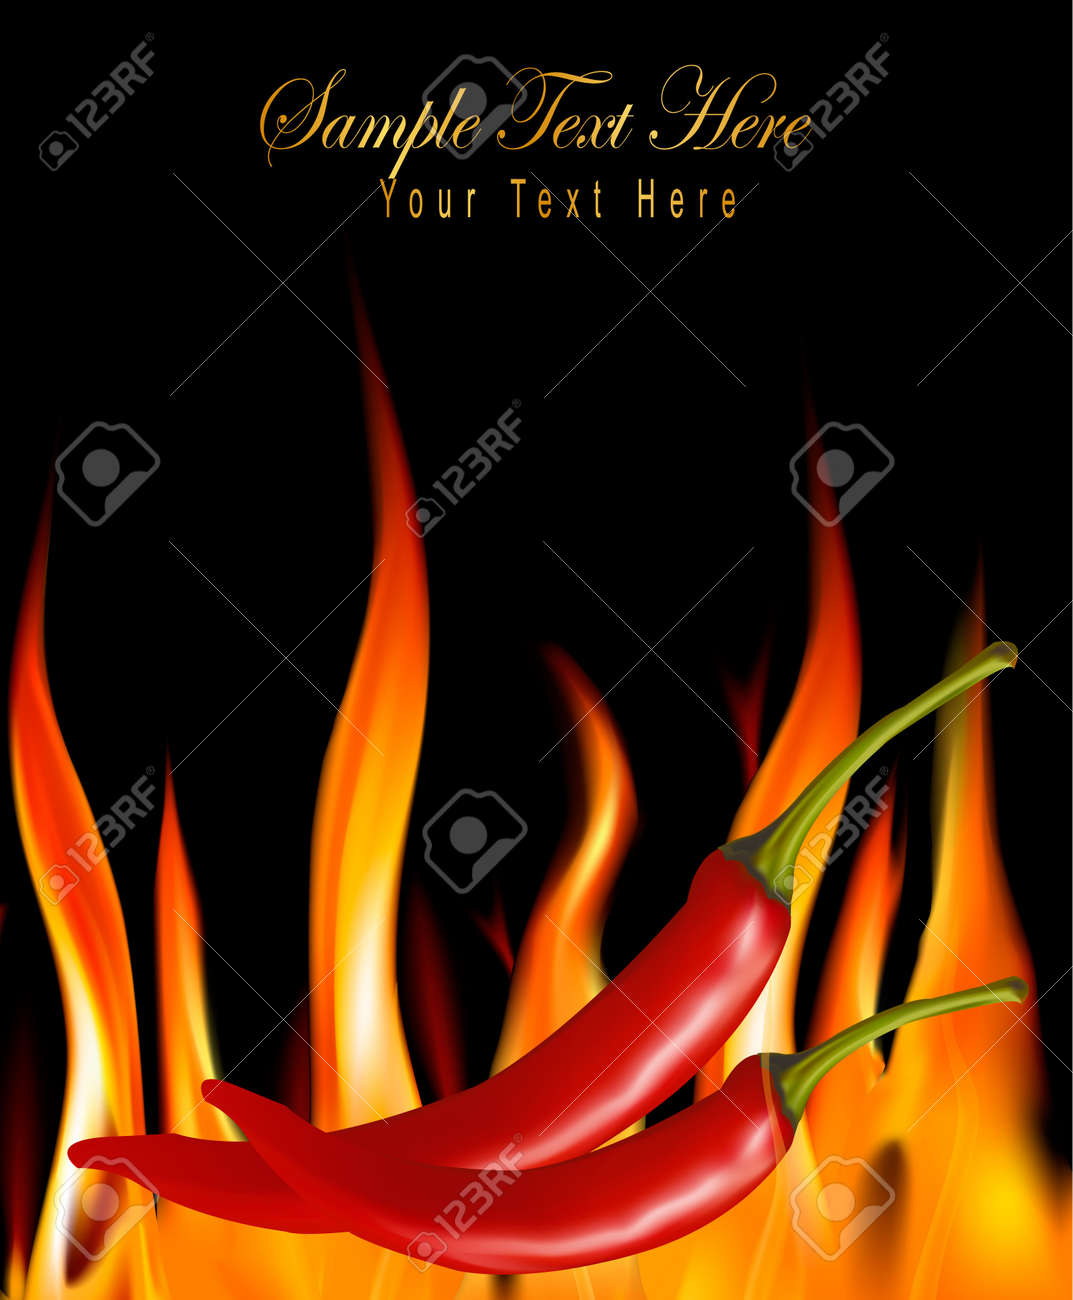 Hot chili peppers in fire. - 9935544